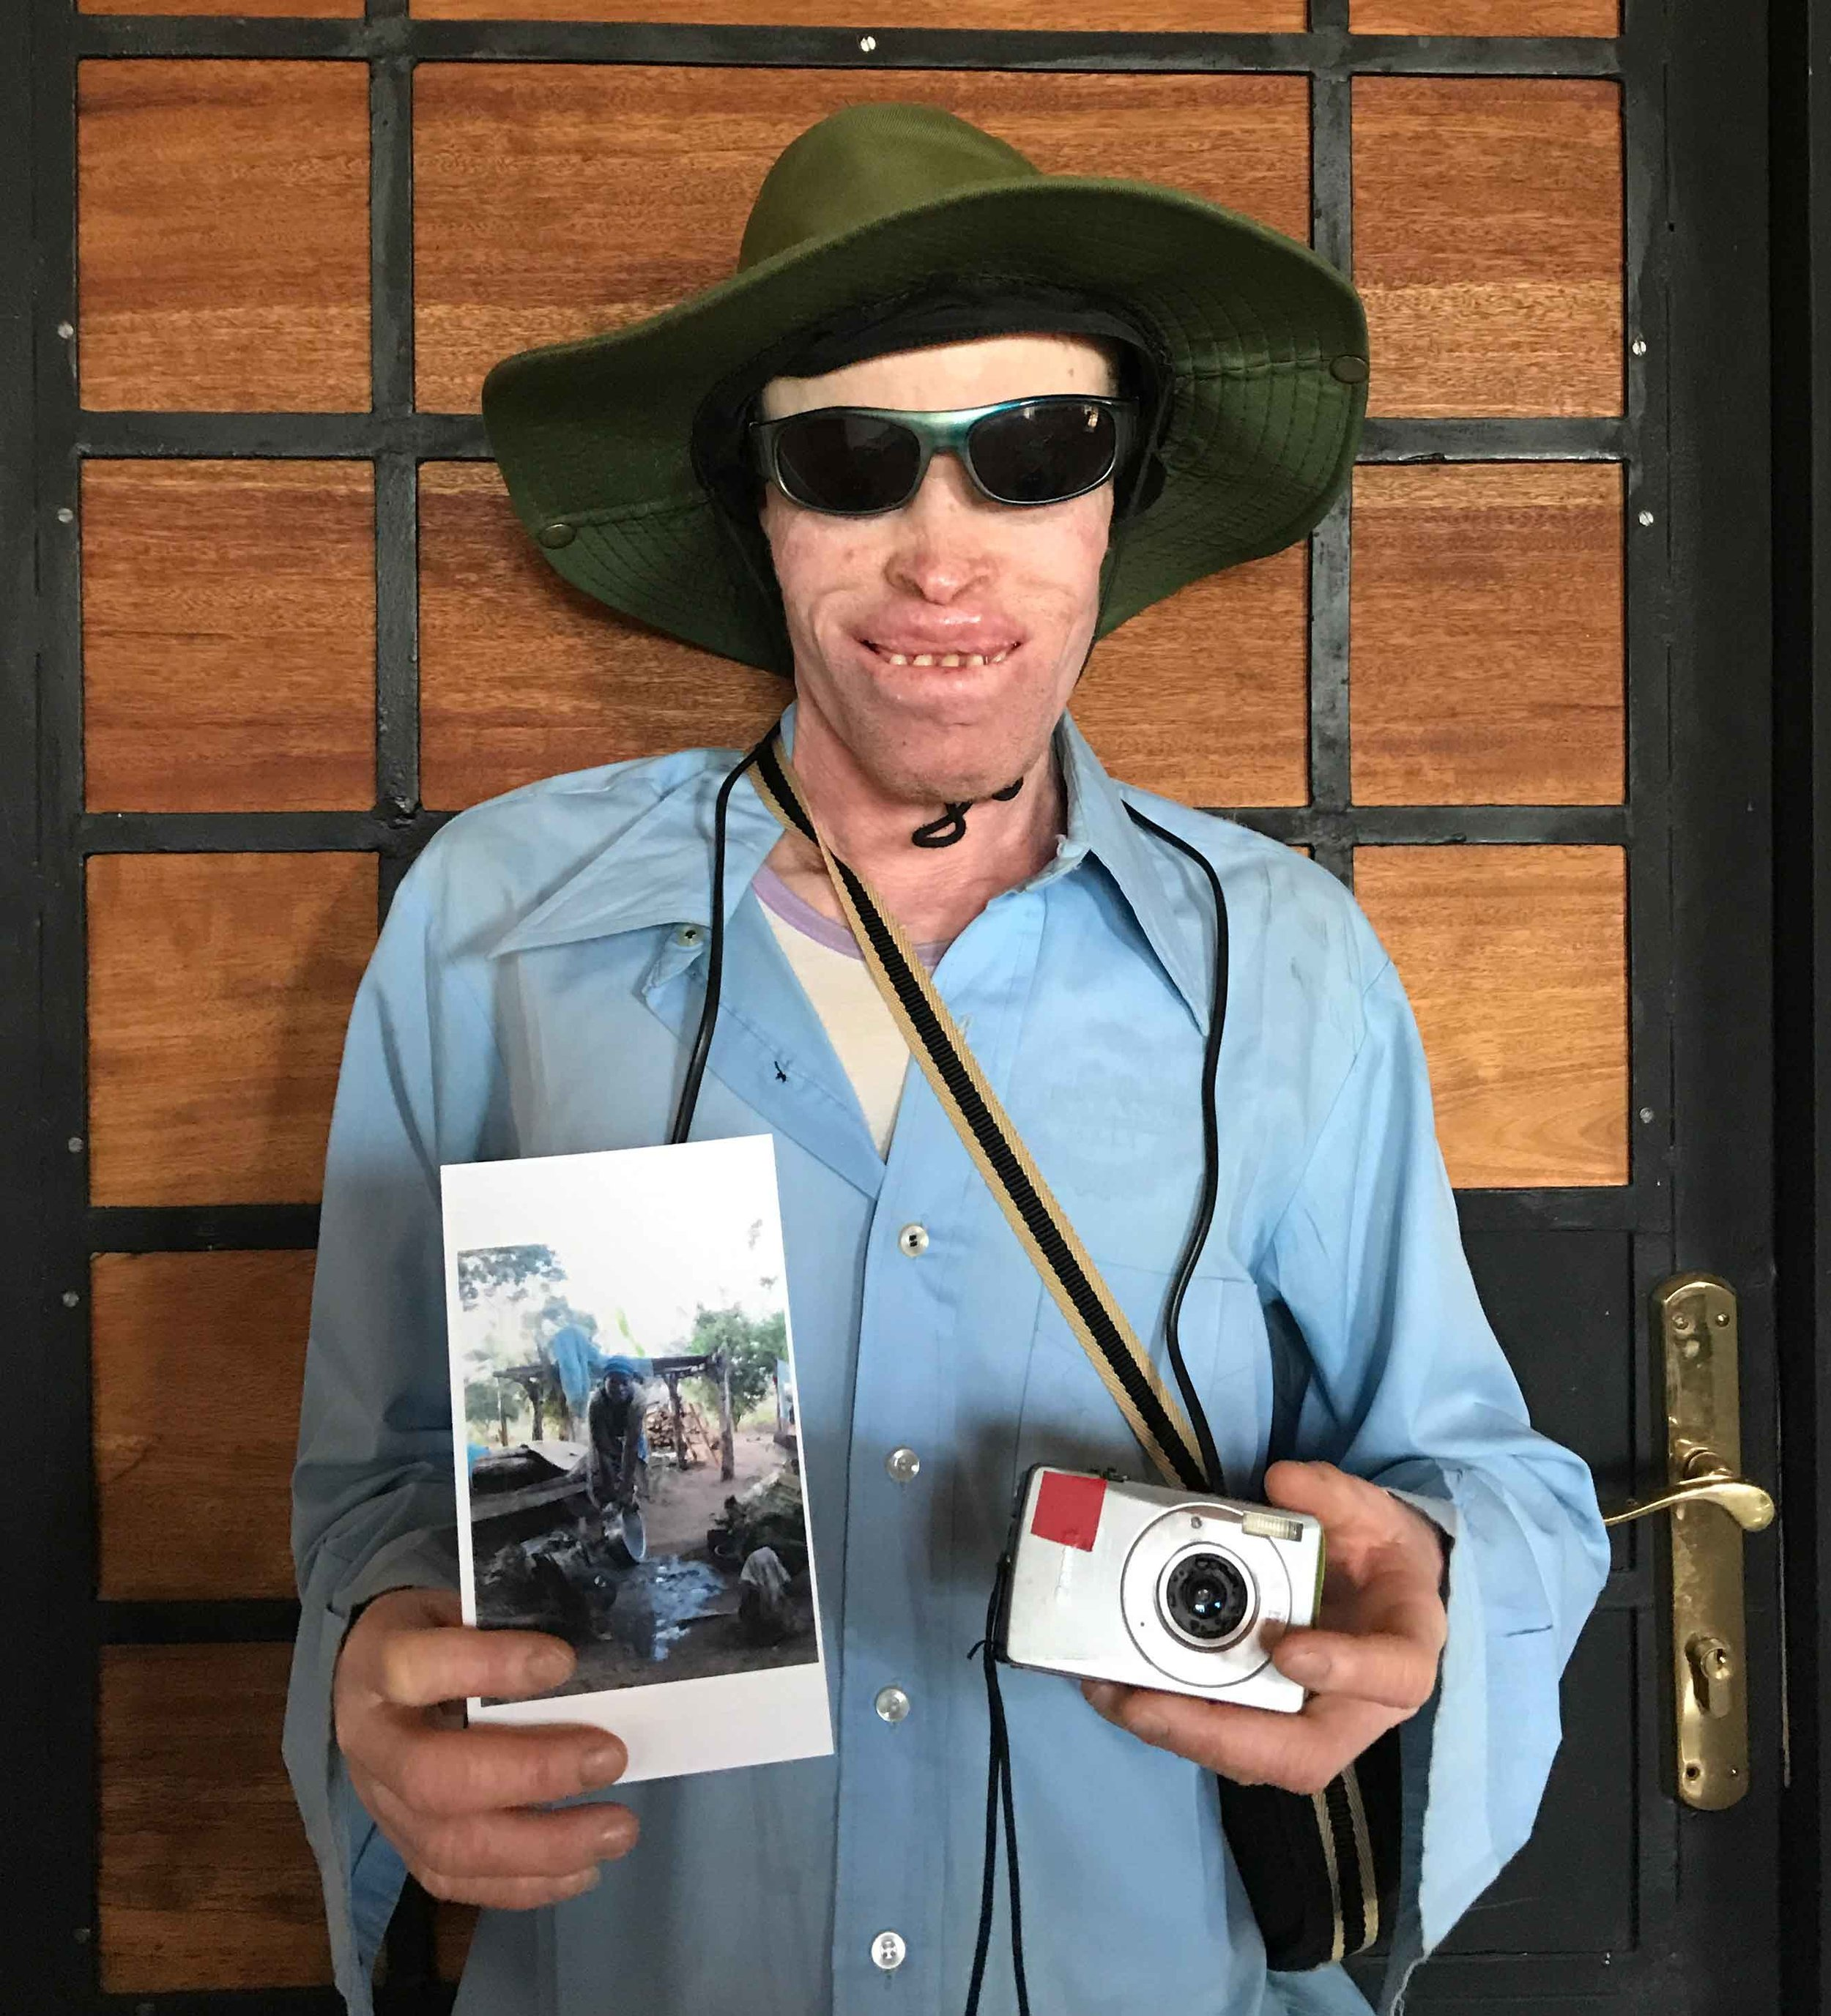 Musa holding his selected photo for the doner of his camera. Camera donated by Maral Zare from Tehran/Iran